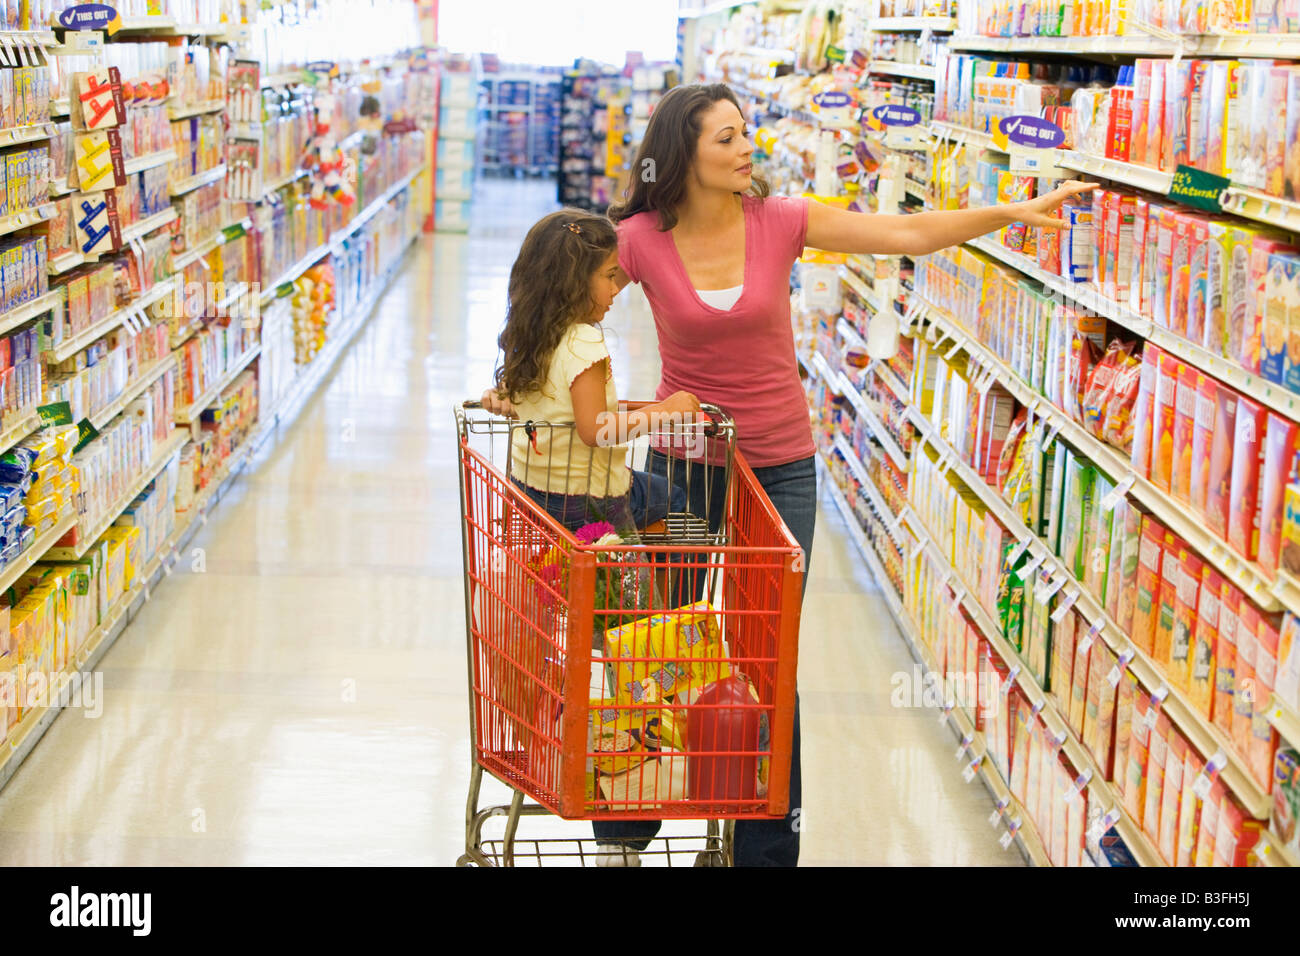 Mother and young daughter shopping at a grocery store - Stock Image